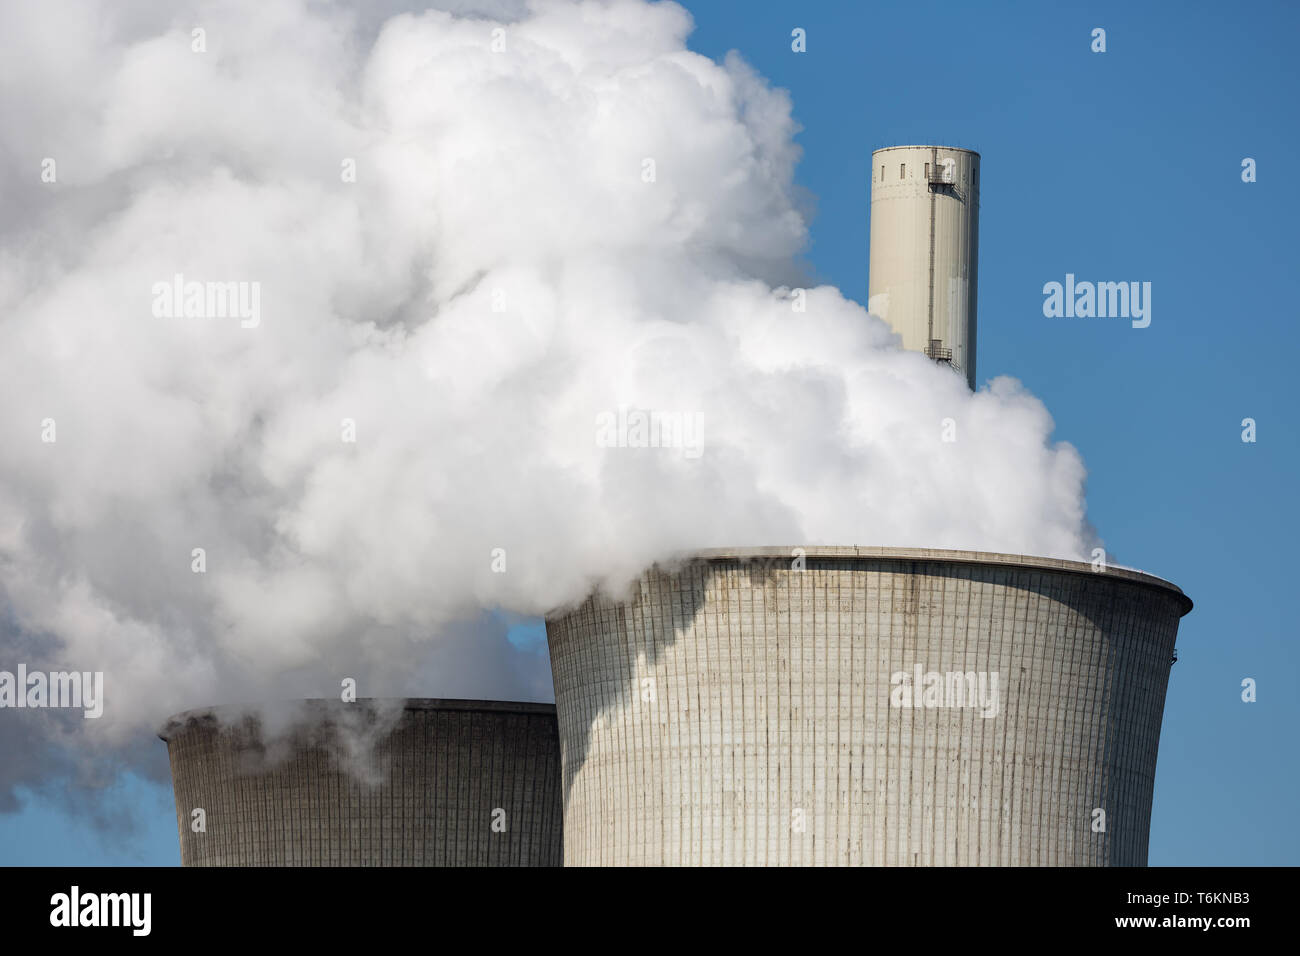 Cooling towers and smokestacks coal fired power plant in Germany Stock Photo